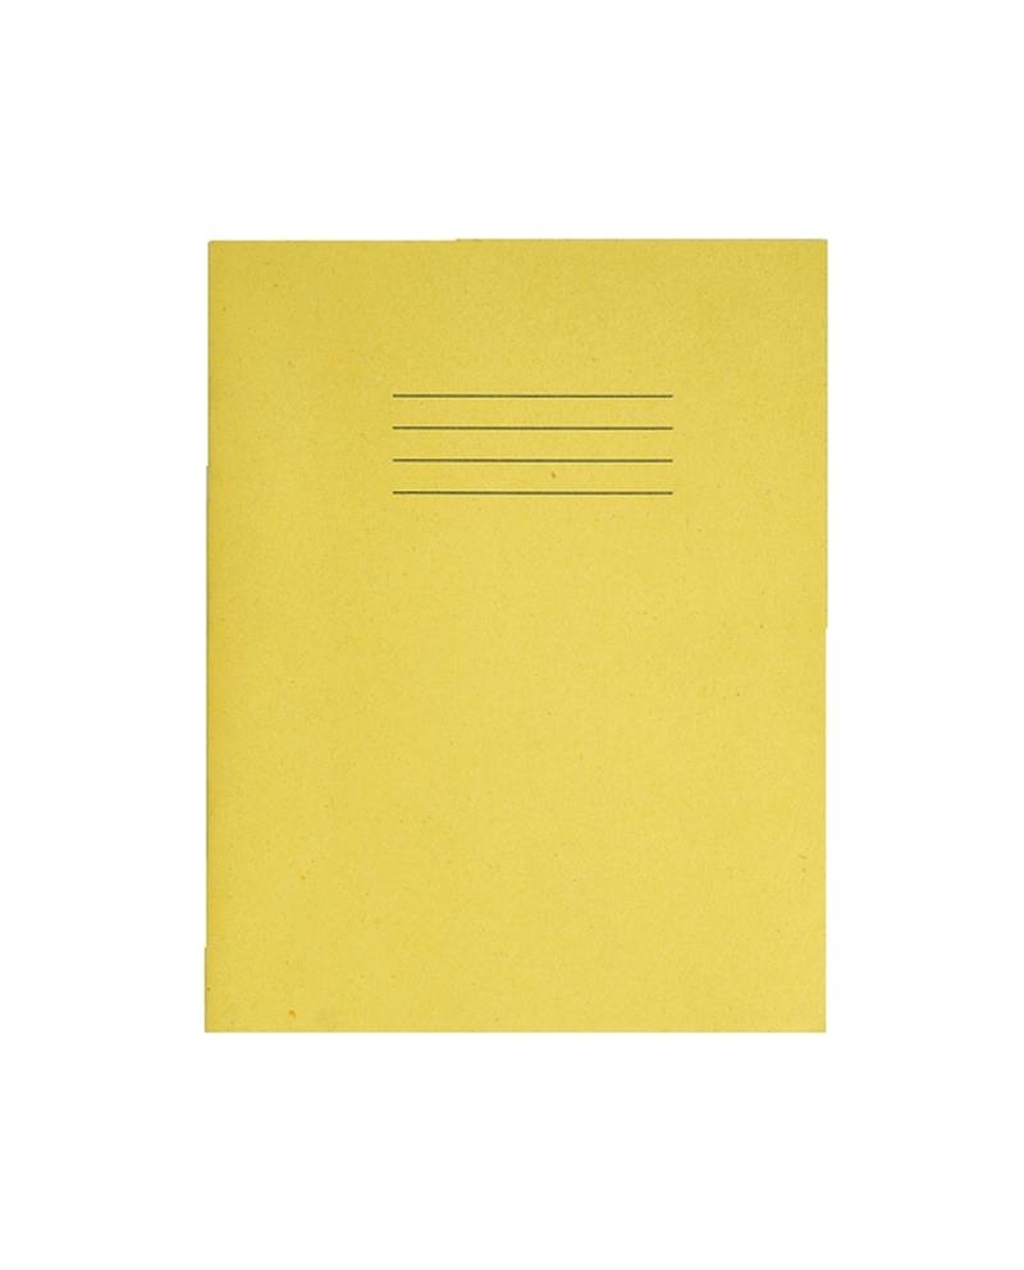 Exercise Book A4+ size (330 x 250mm) Yellow Cover Plain - No Ruling 40 Pages